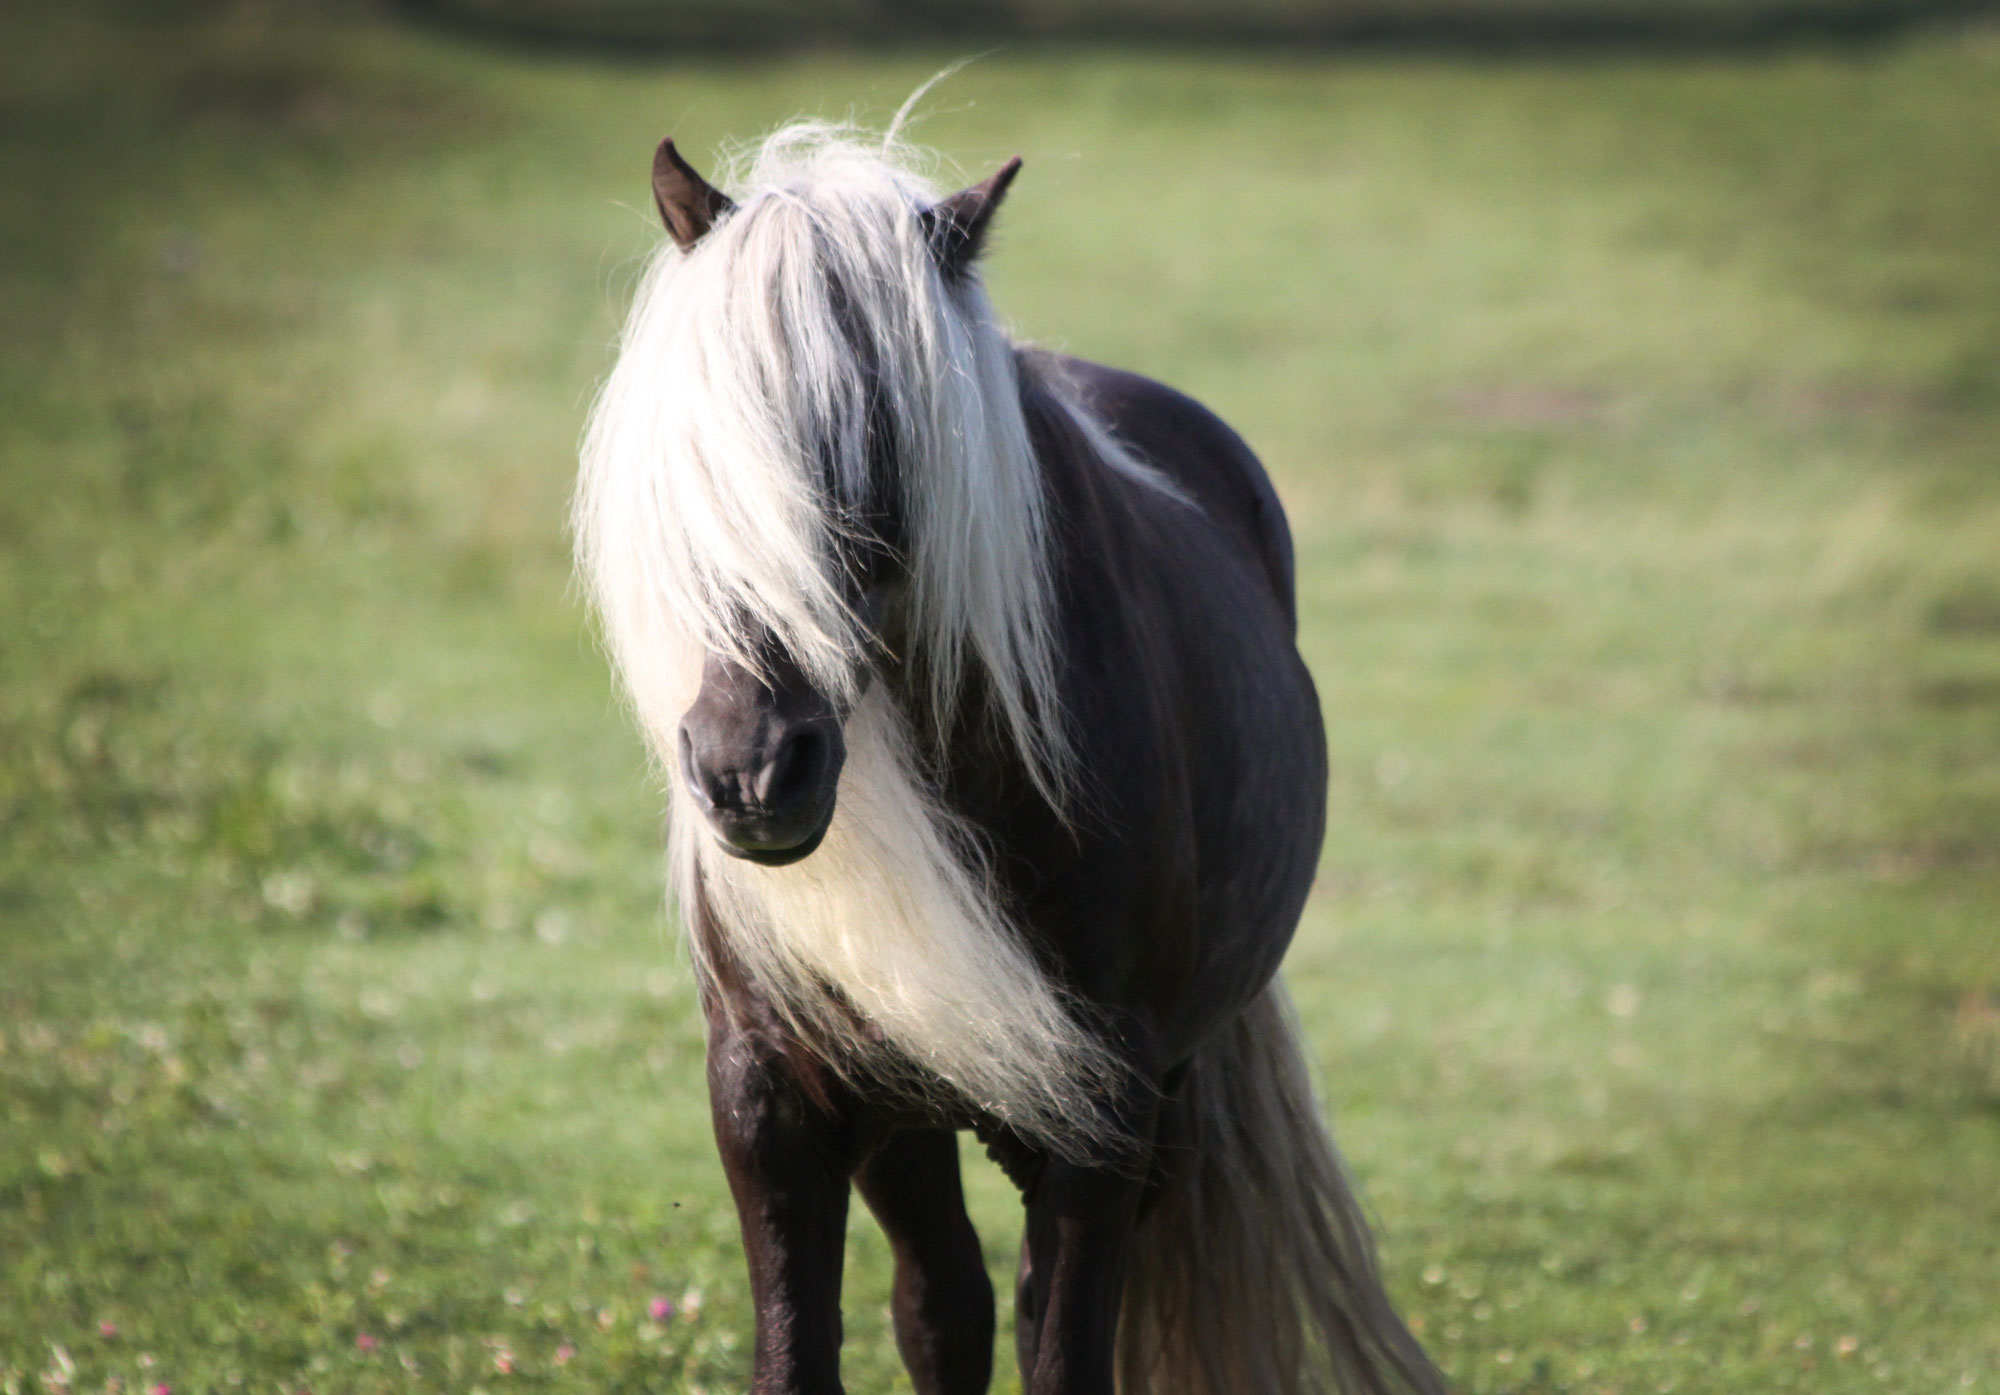 Fabio, the wild pony, during camping trip to Grayson Highlands State Park, Virginia